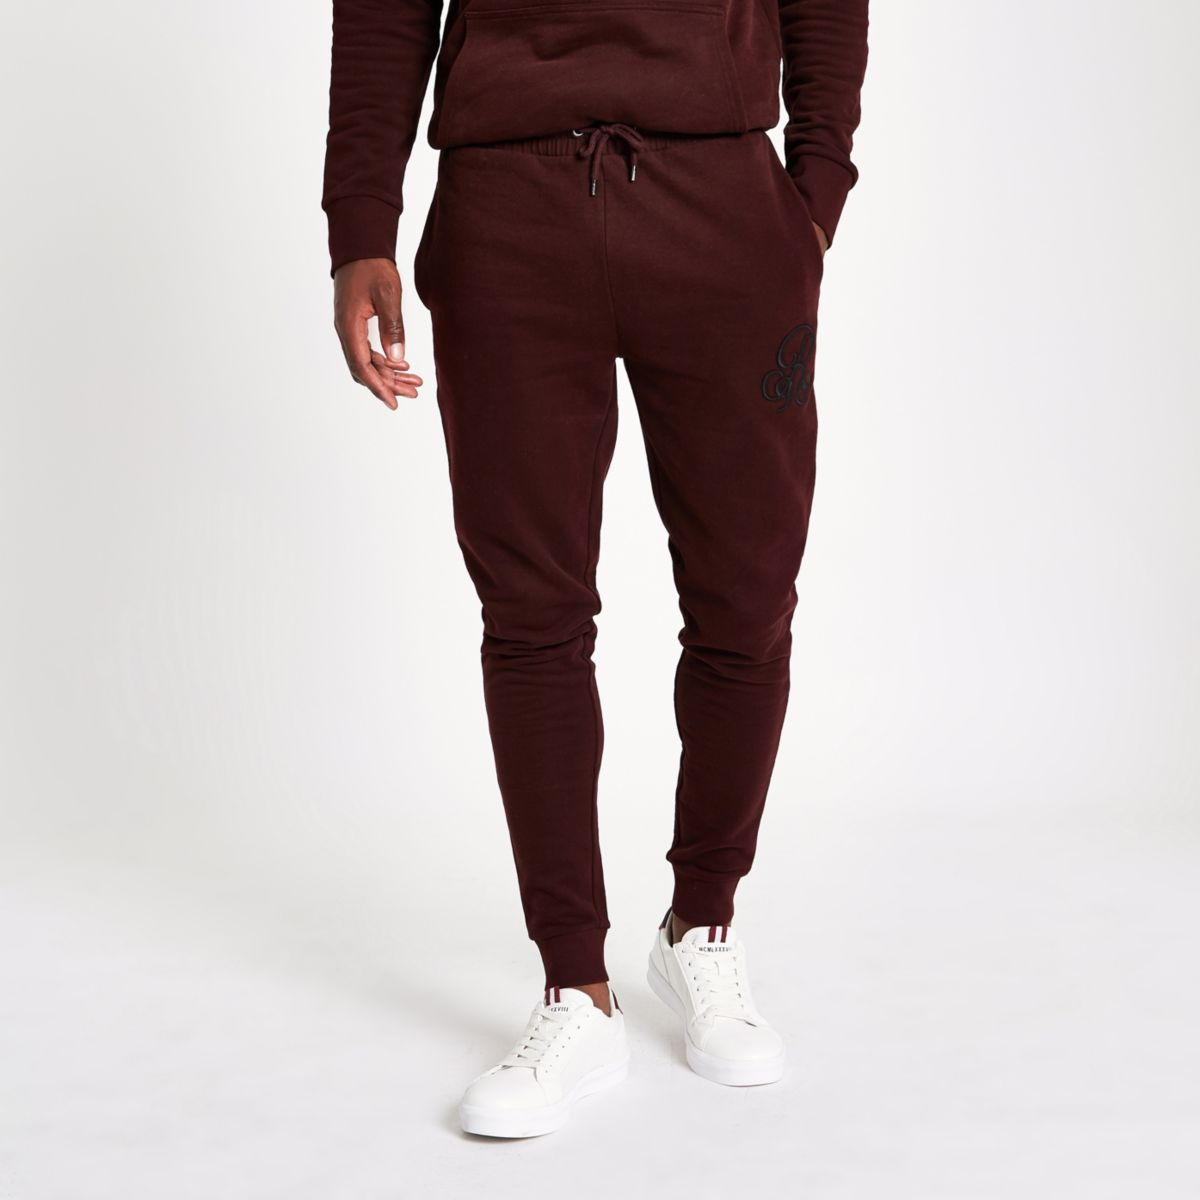 R96 dark red muscle fit joggers